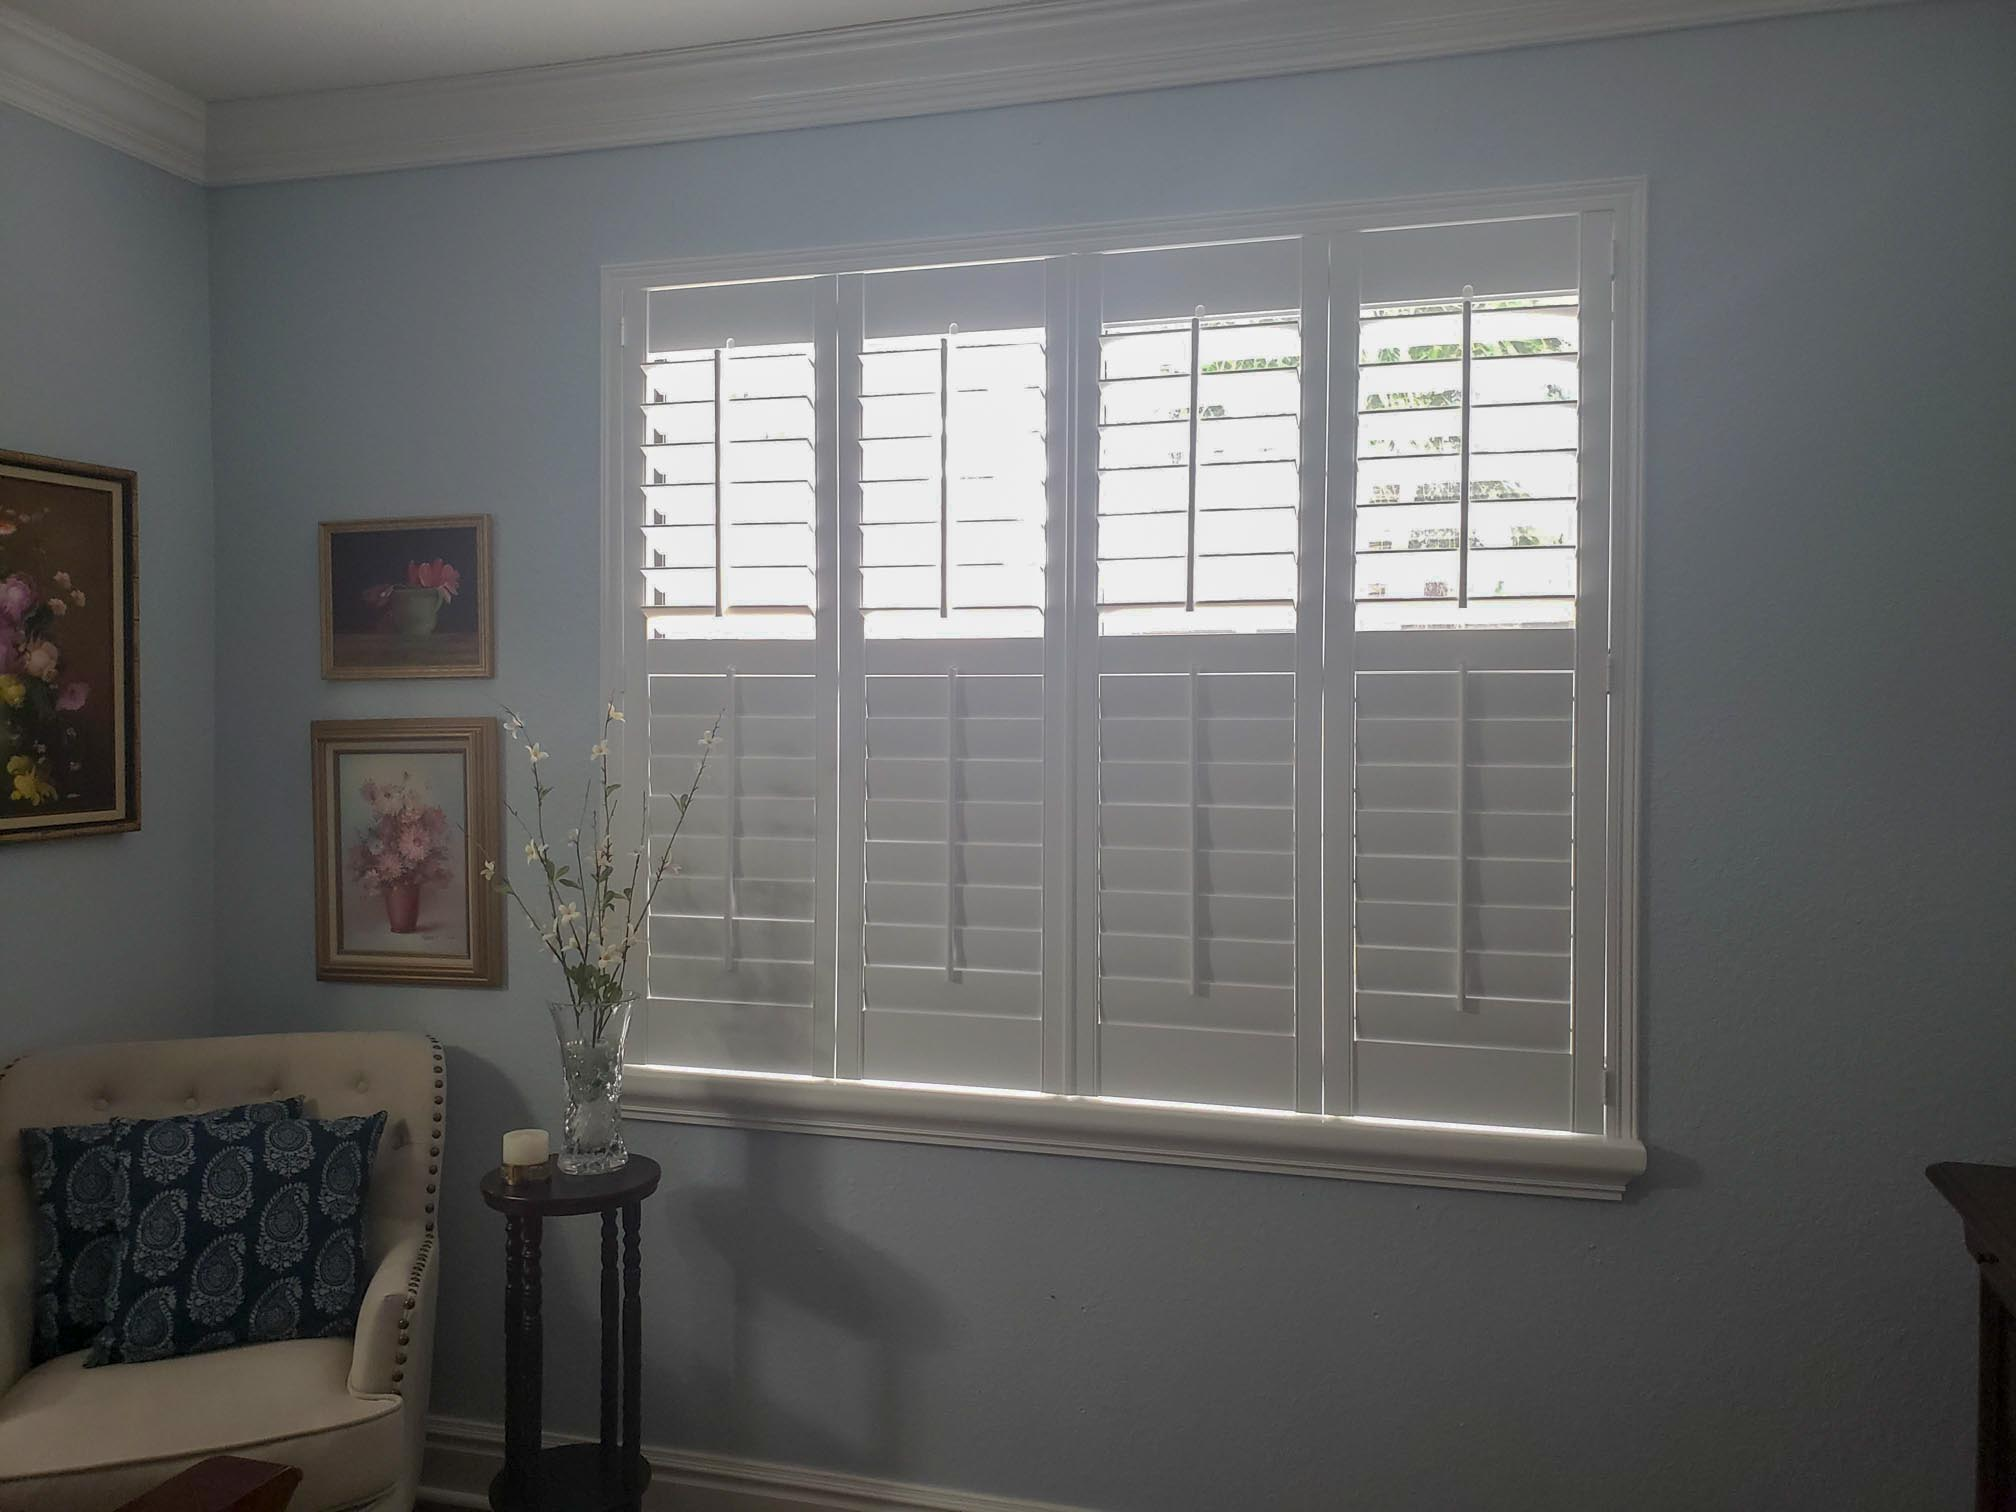 plantation shutters gallery PLANTATION SHUTTERS GALLERY 20180601 152020